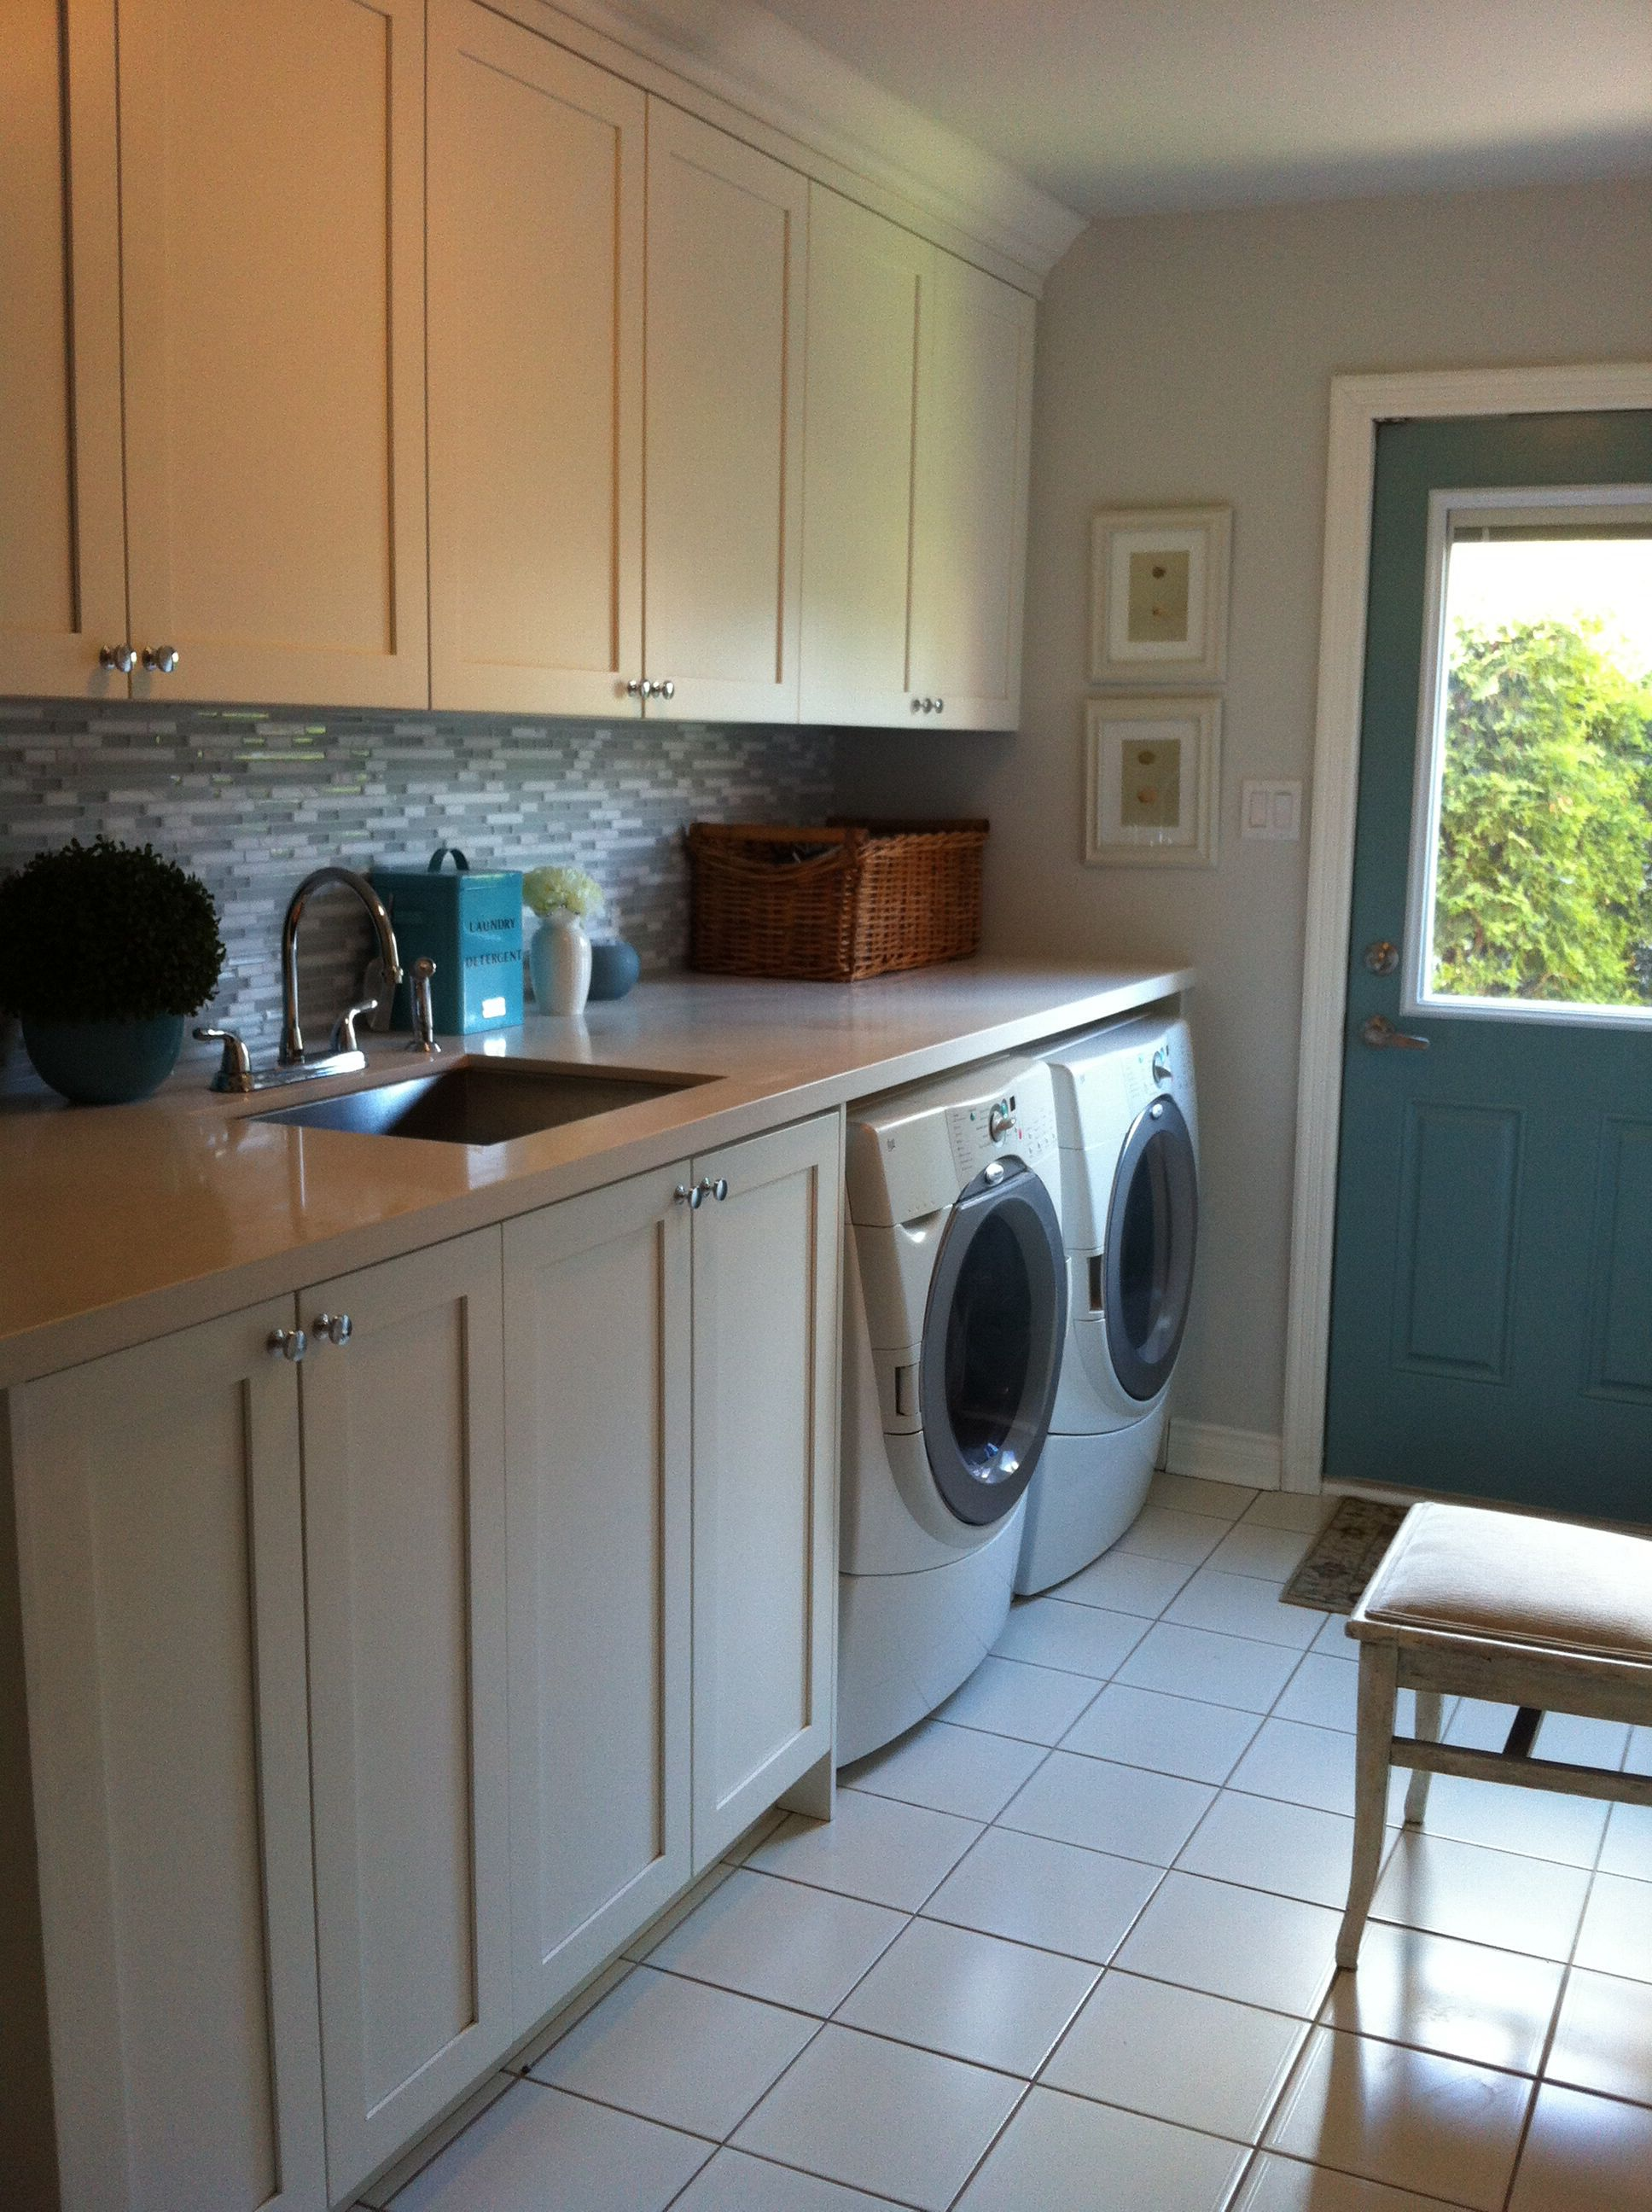 Benjamin Moore Simply White Laundry Room Cabinets, Teal Accents, Walls